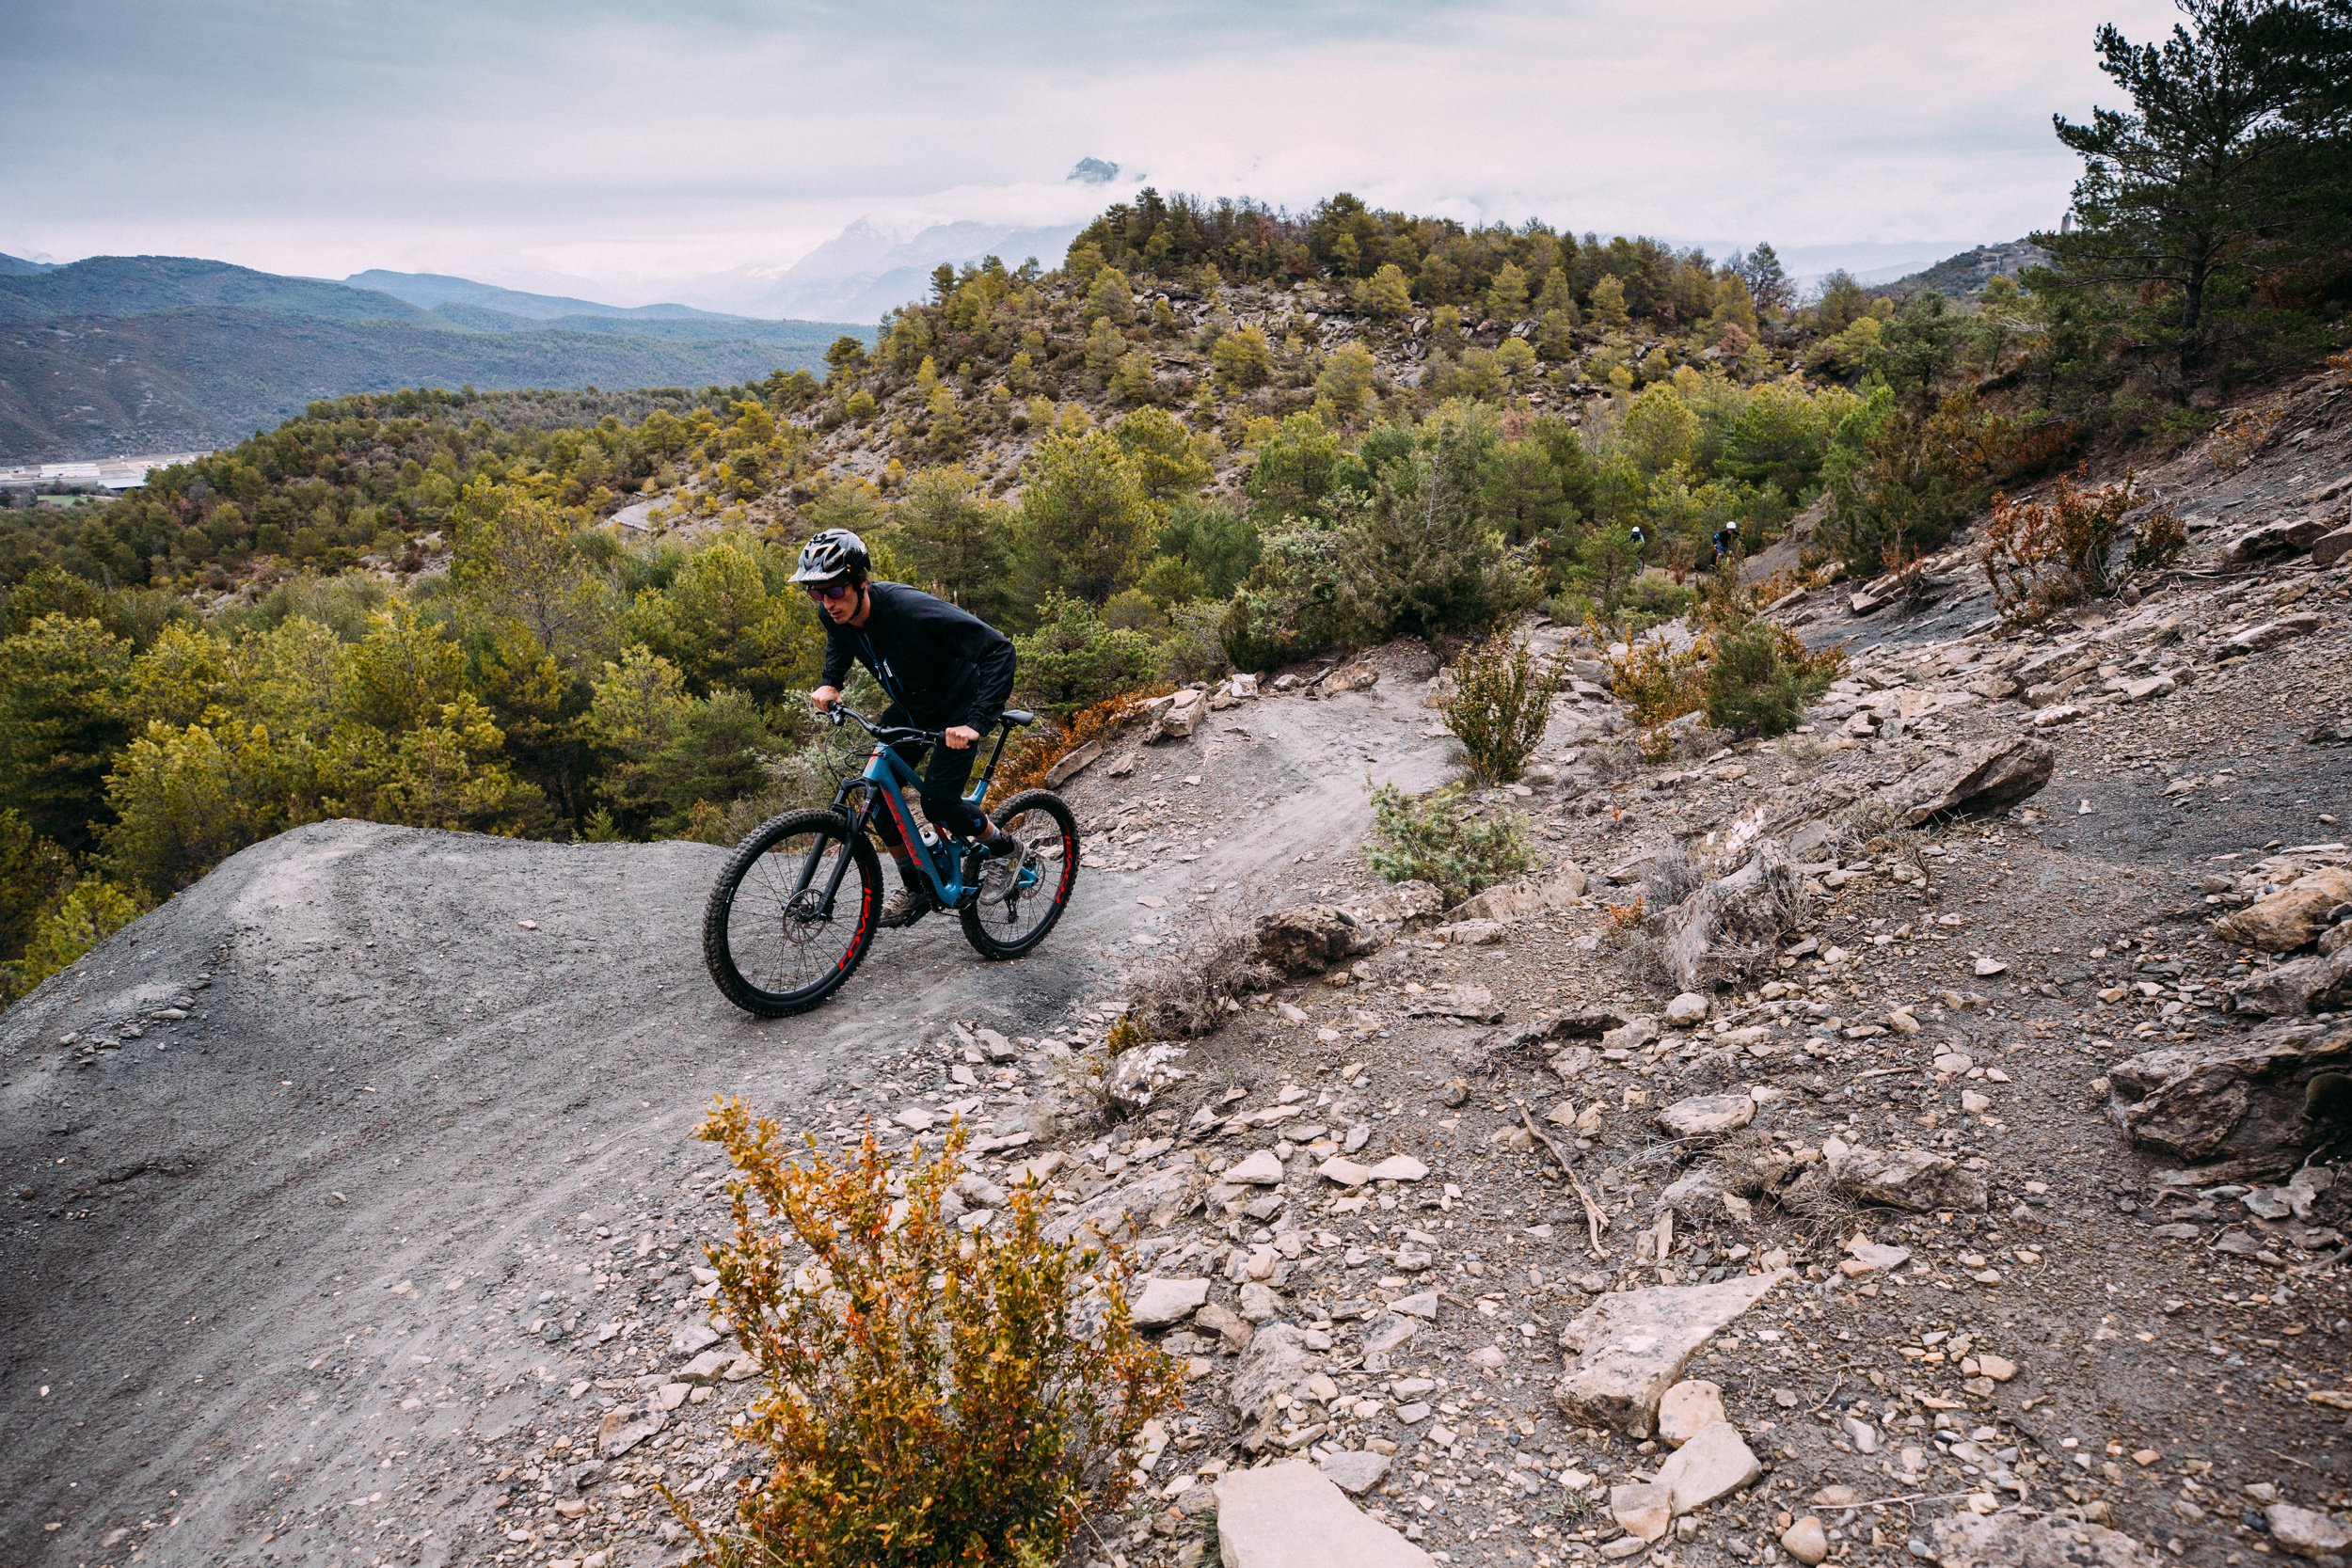 AJ Barlas climbing the 2018 Specialized Stumpjumper 29 in Spain